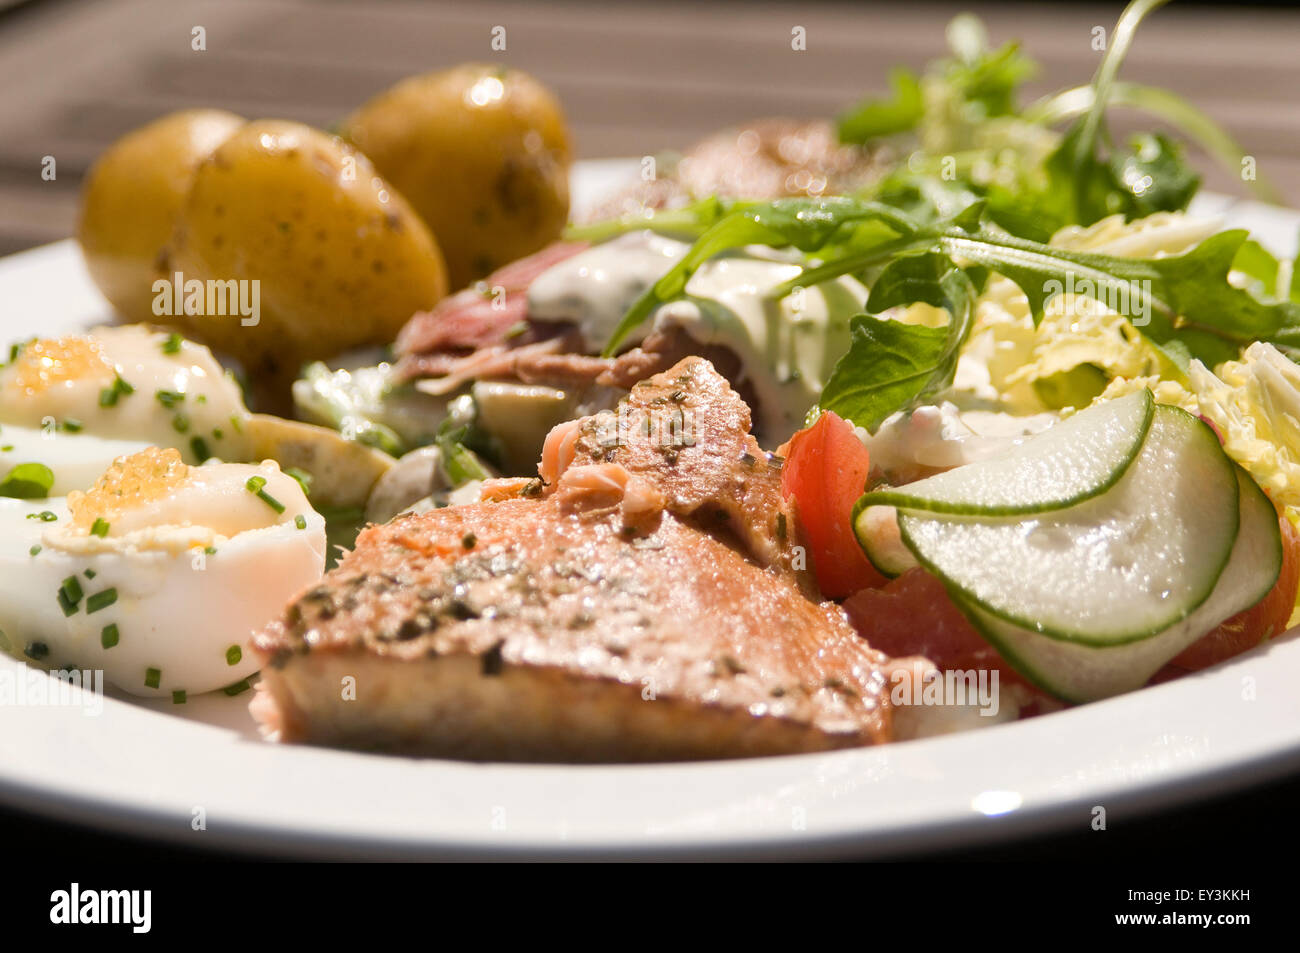 scandinavian diet swedish sweden food meal diets smoke fish oil stock photo royalty free image. Black Bedroom Furniture Sets. Home Design Ideas